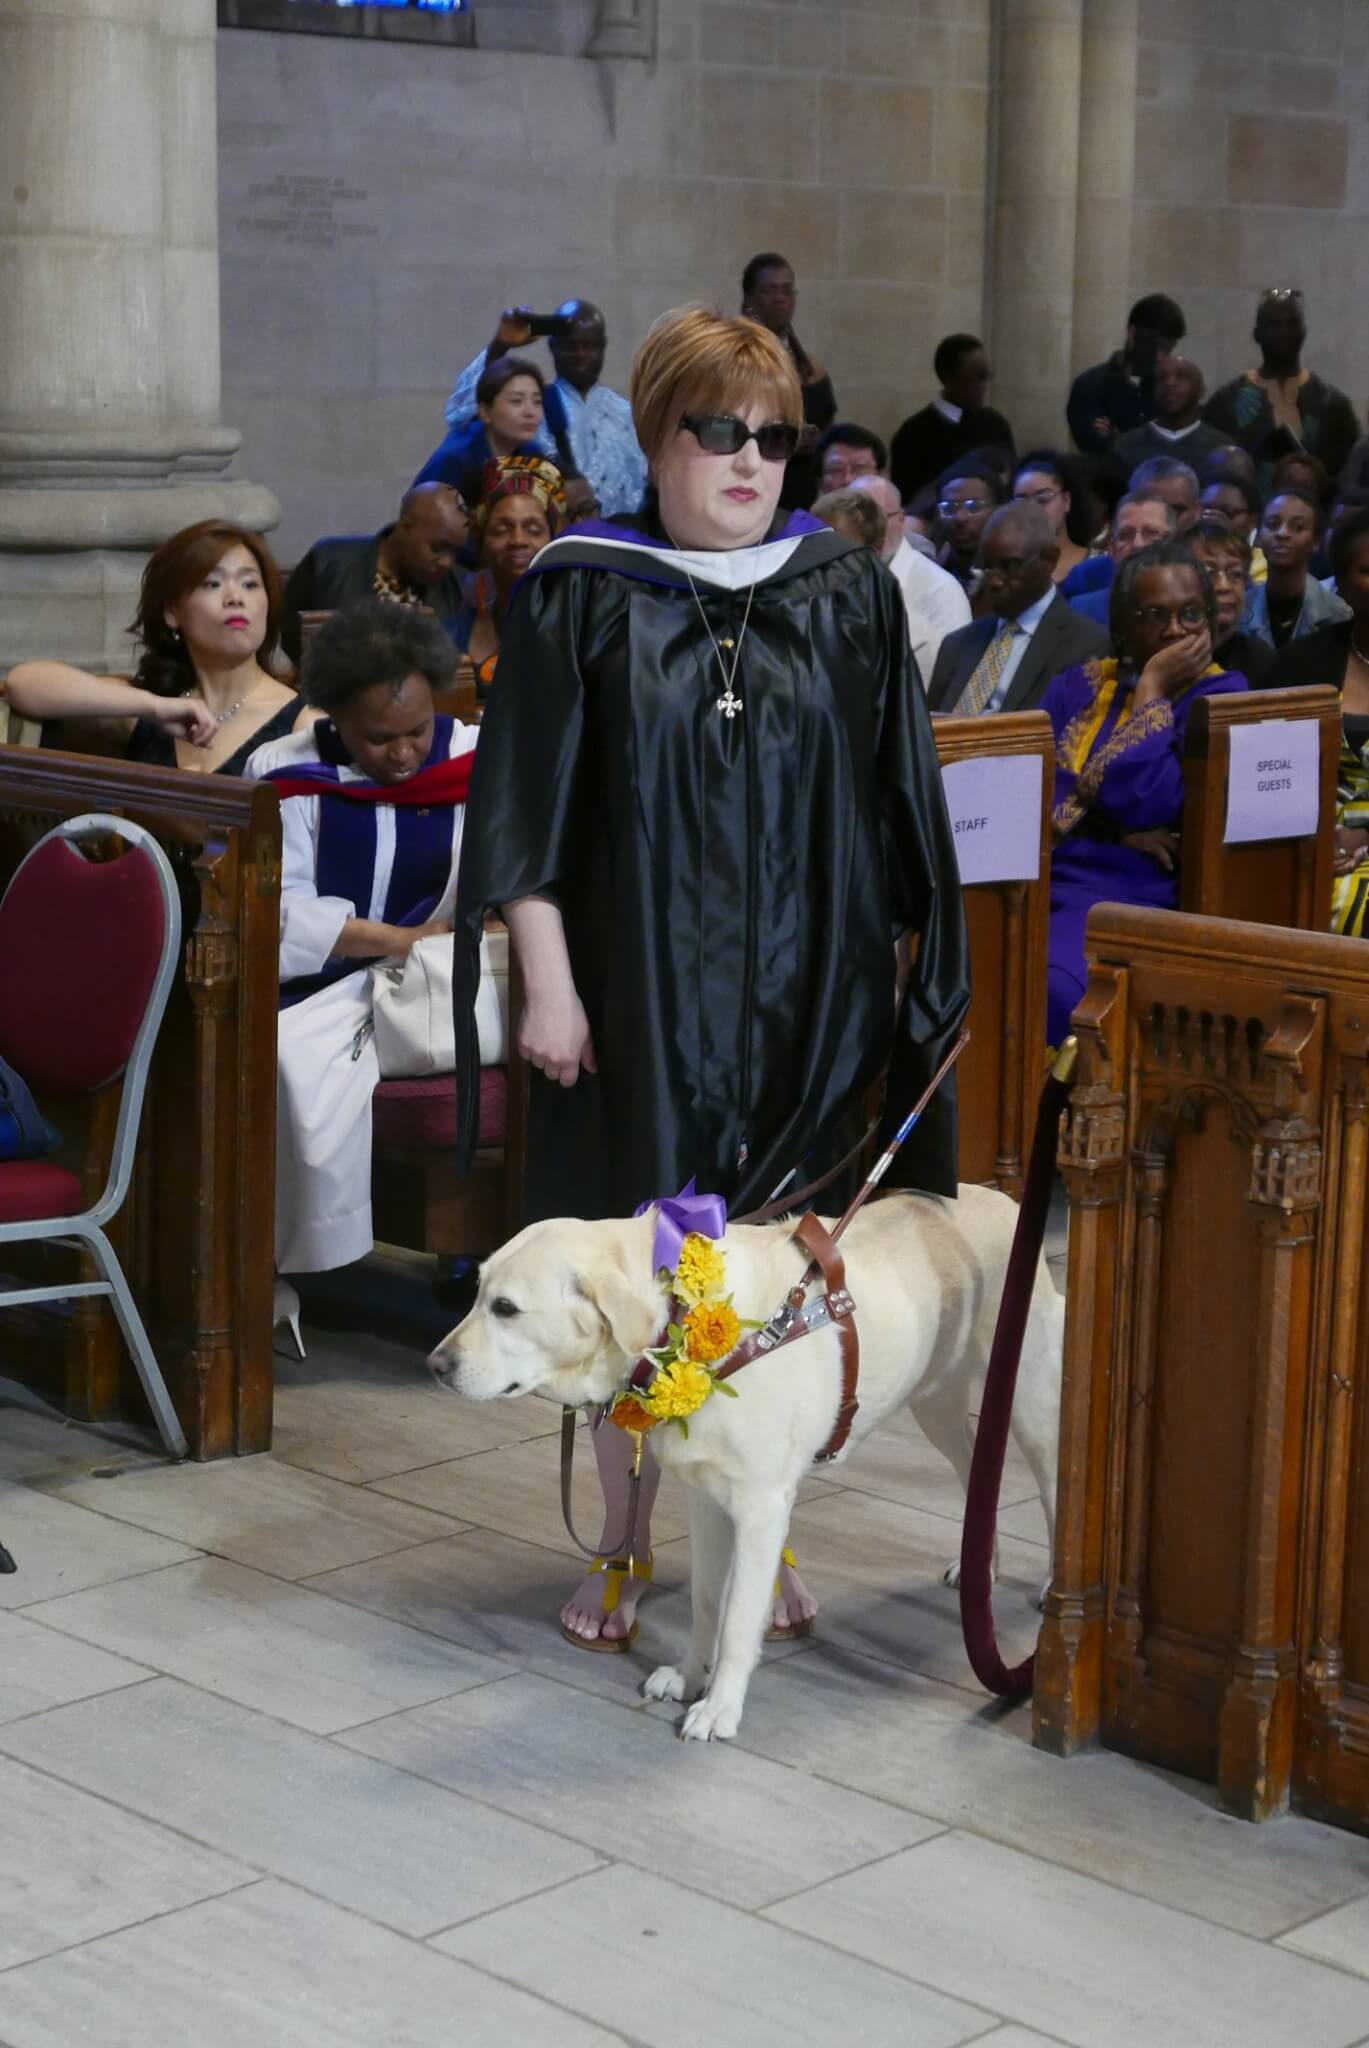 Holly & guide dog, Frances, prepare to graduate from the seminary.